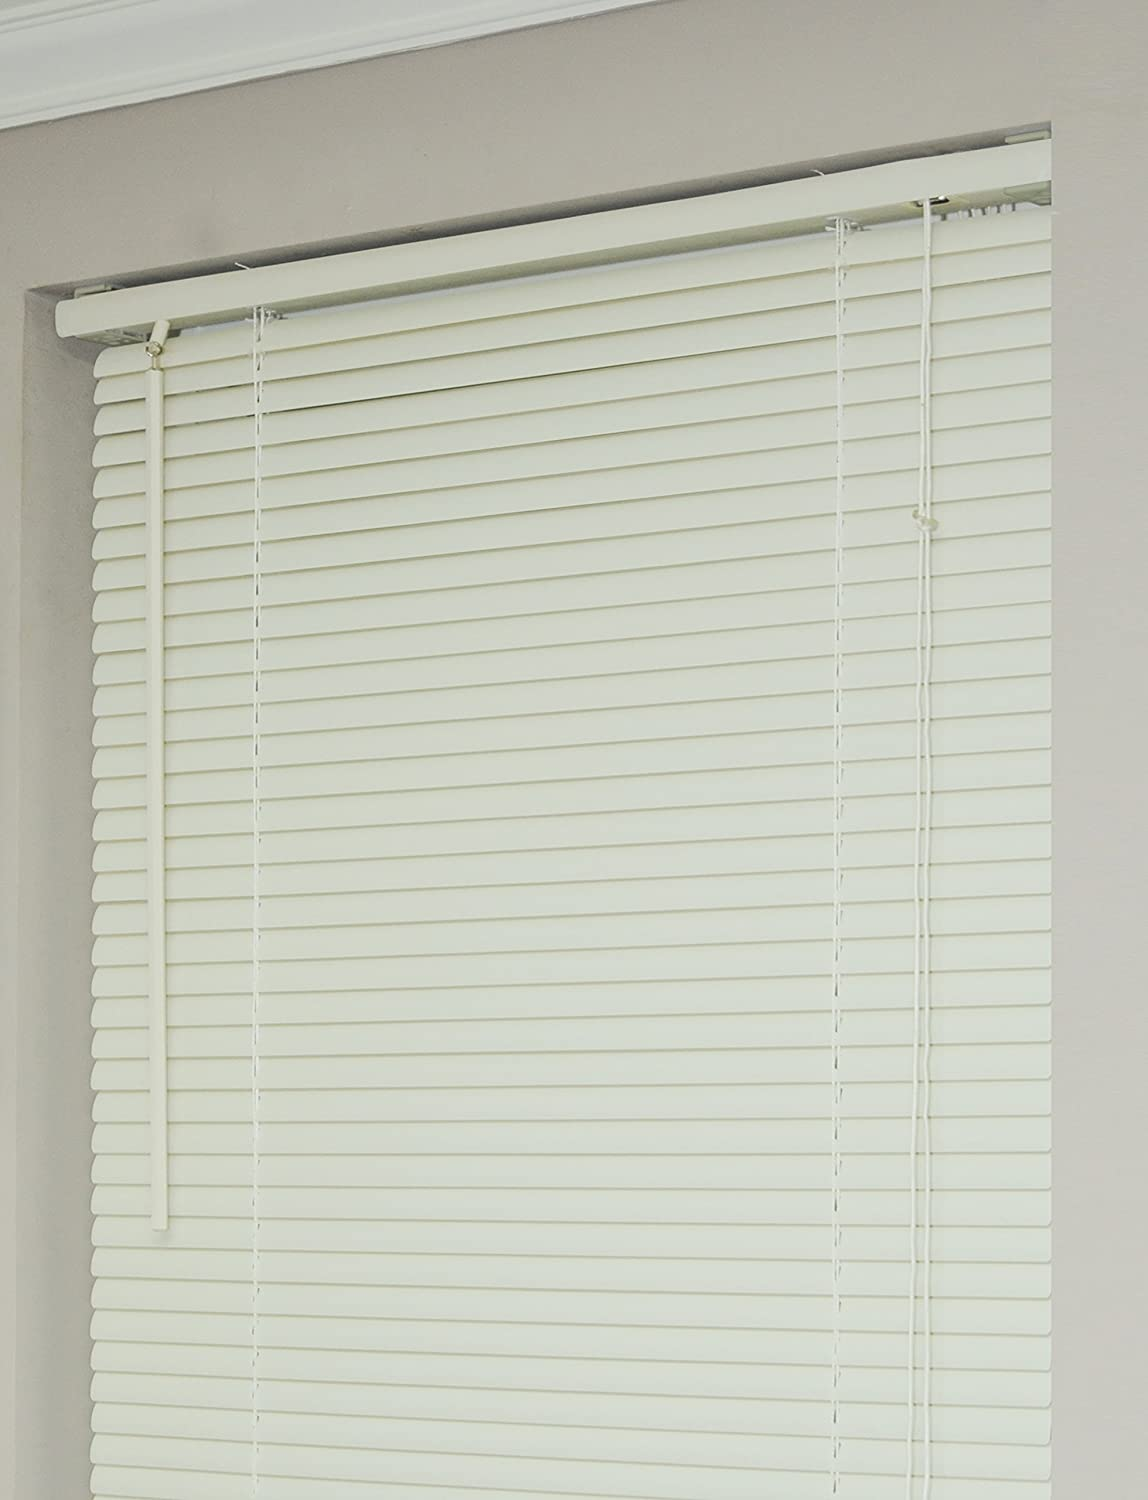 illustrative blind appearance actual alabaster and blinds venetian size are differ purposes product only timber place images may the for